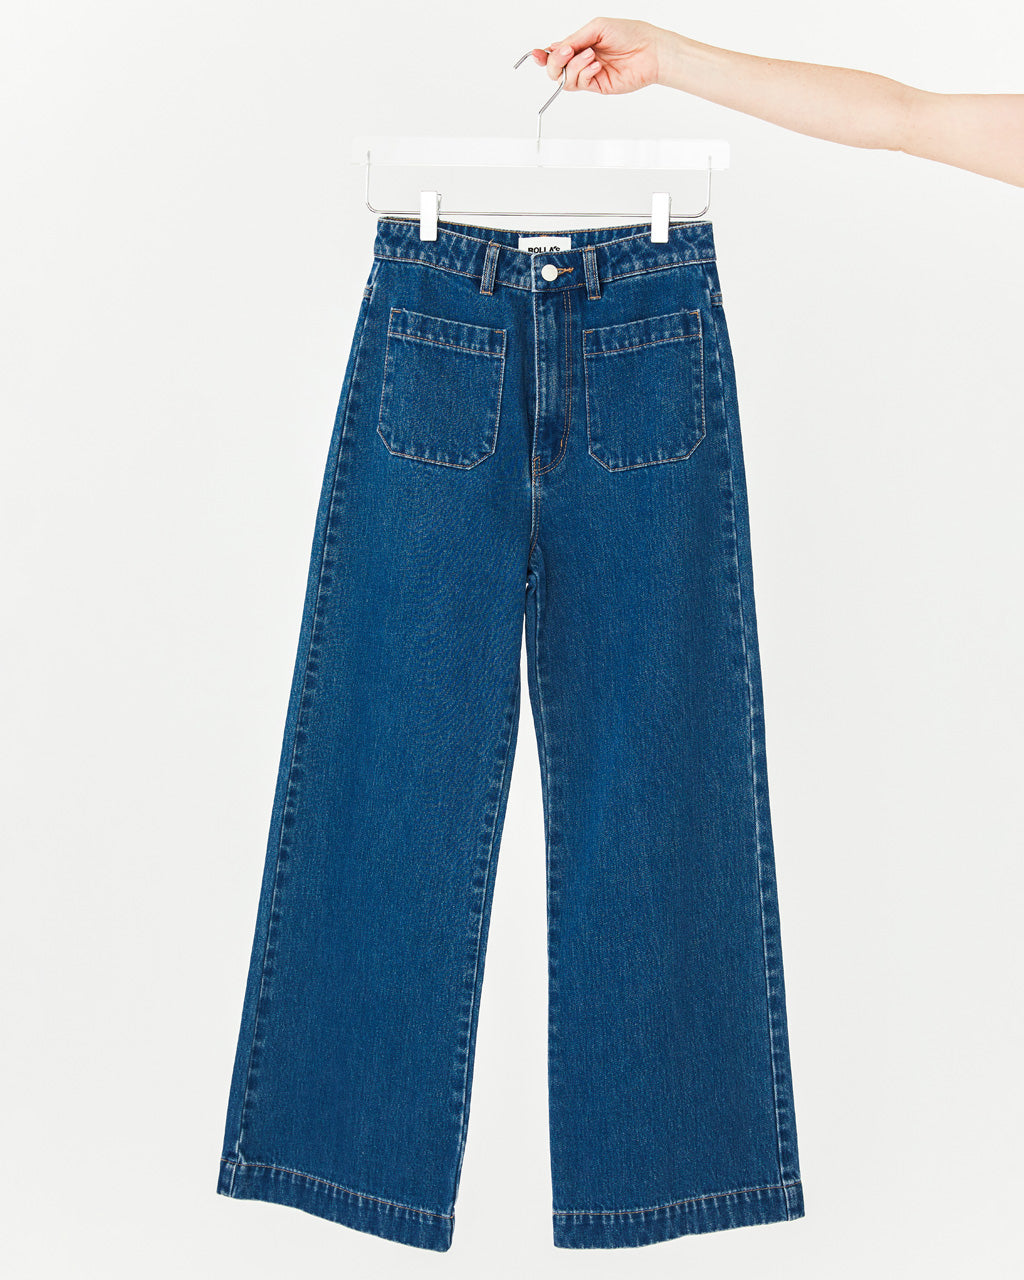 Indigo blue jeans with front patch pockets, high waist, wide leg and a zip fly